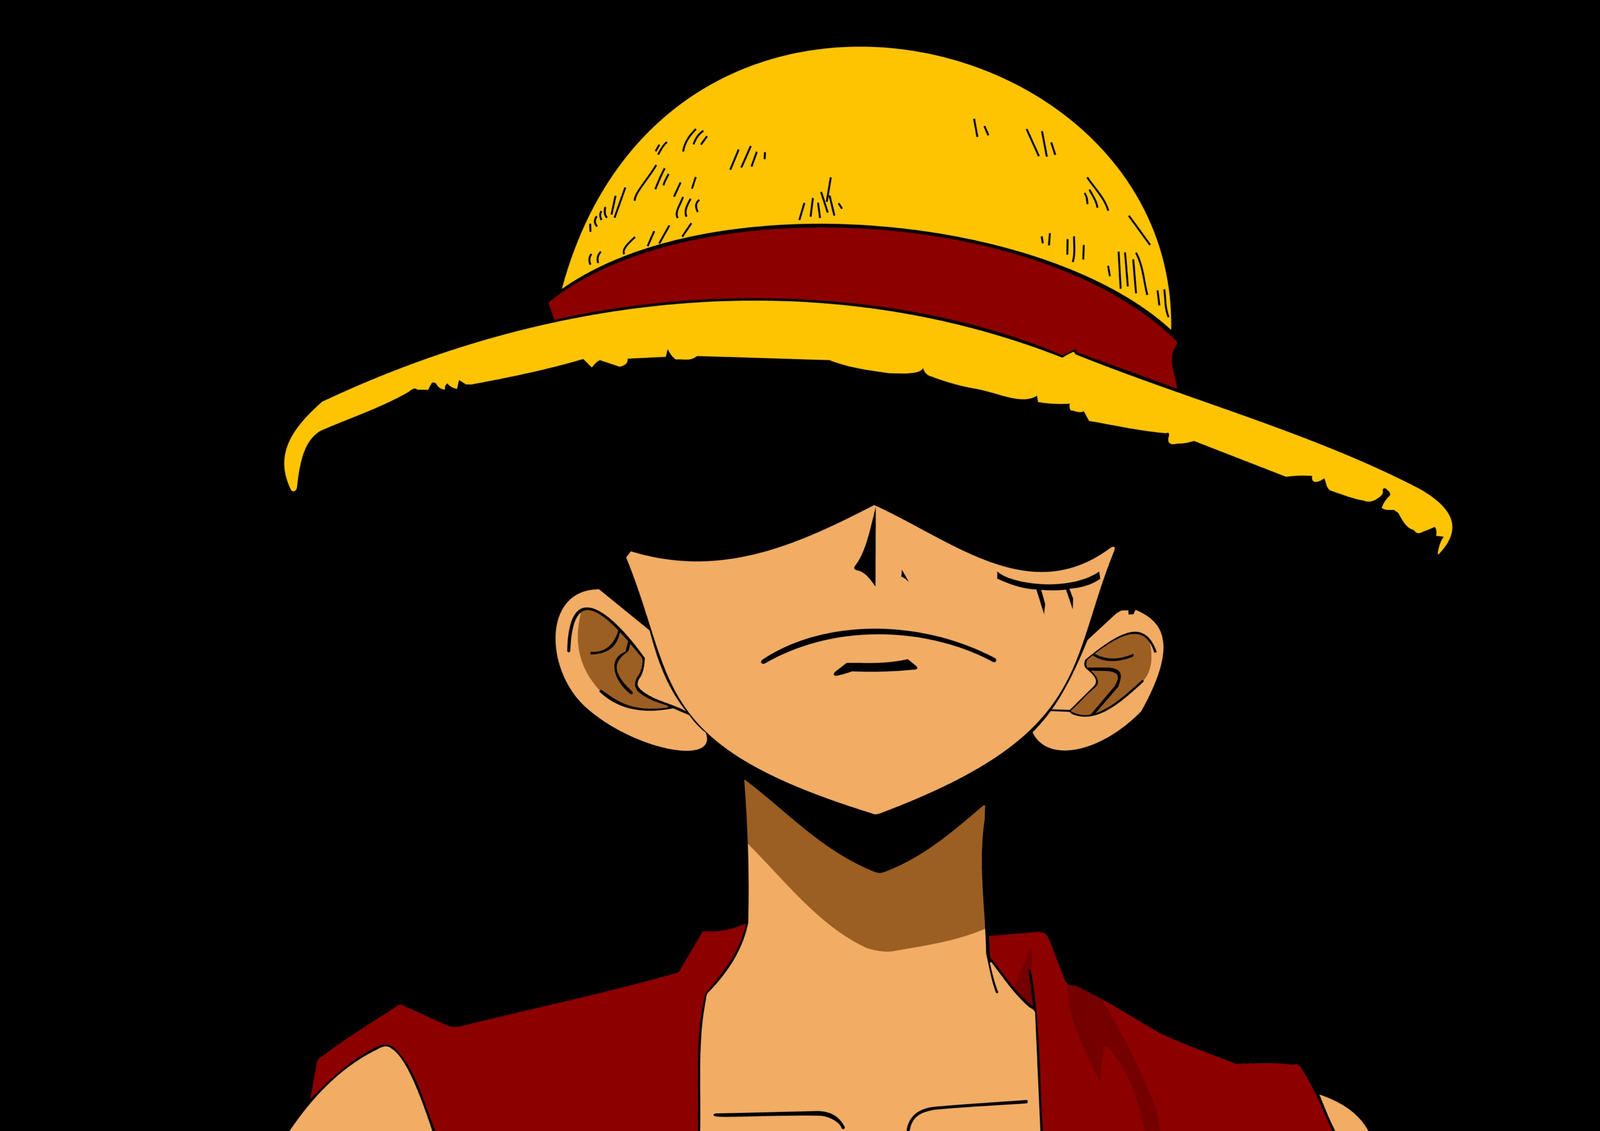 Luffy one piece by pablokahuna on deviantart - One piece equipage luffy ...